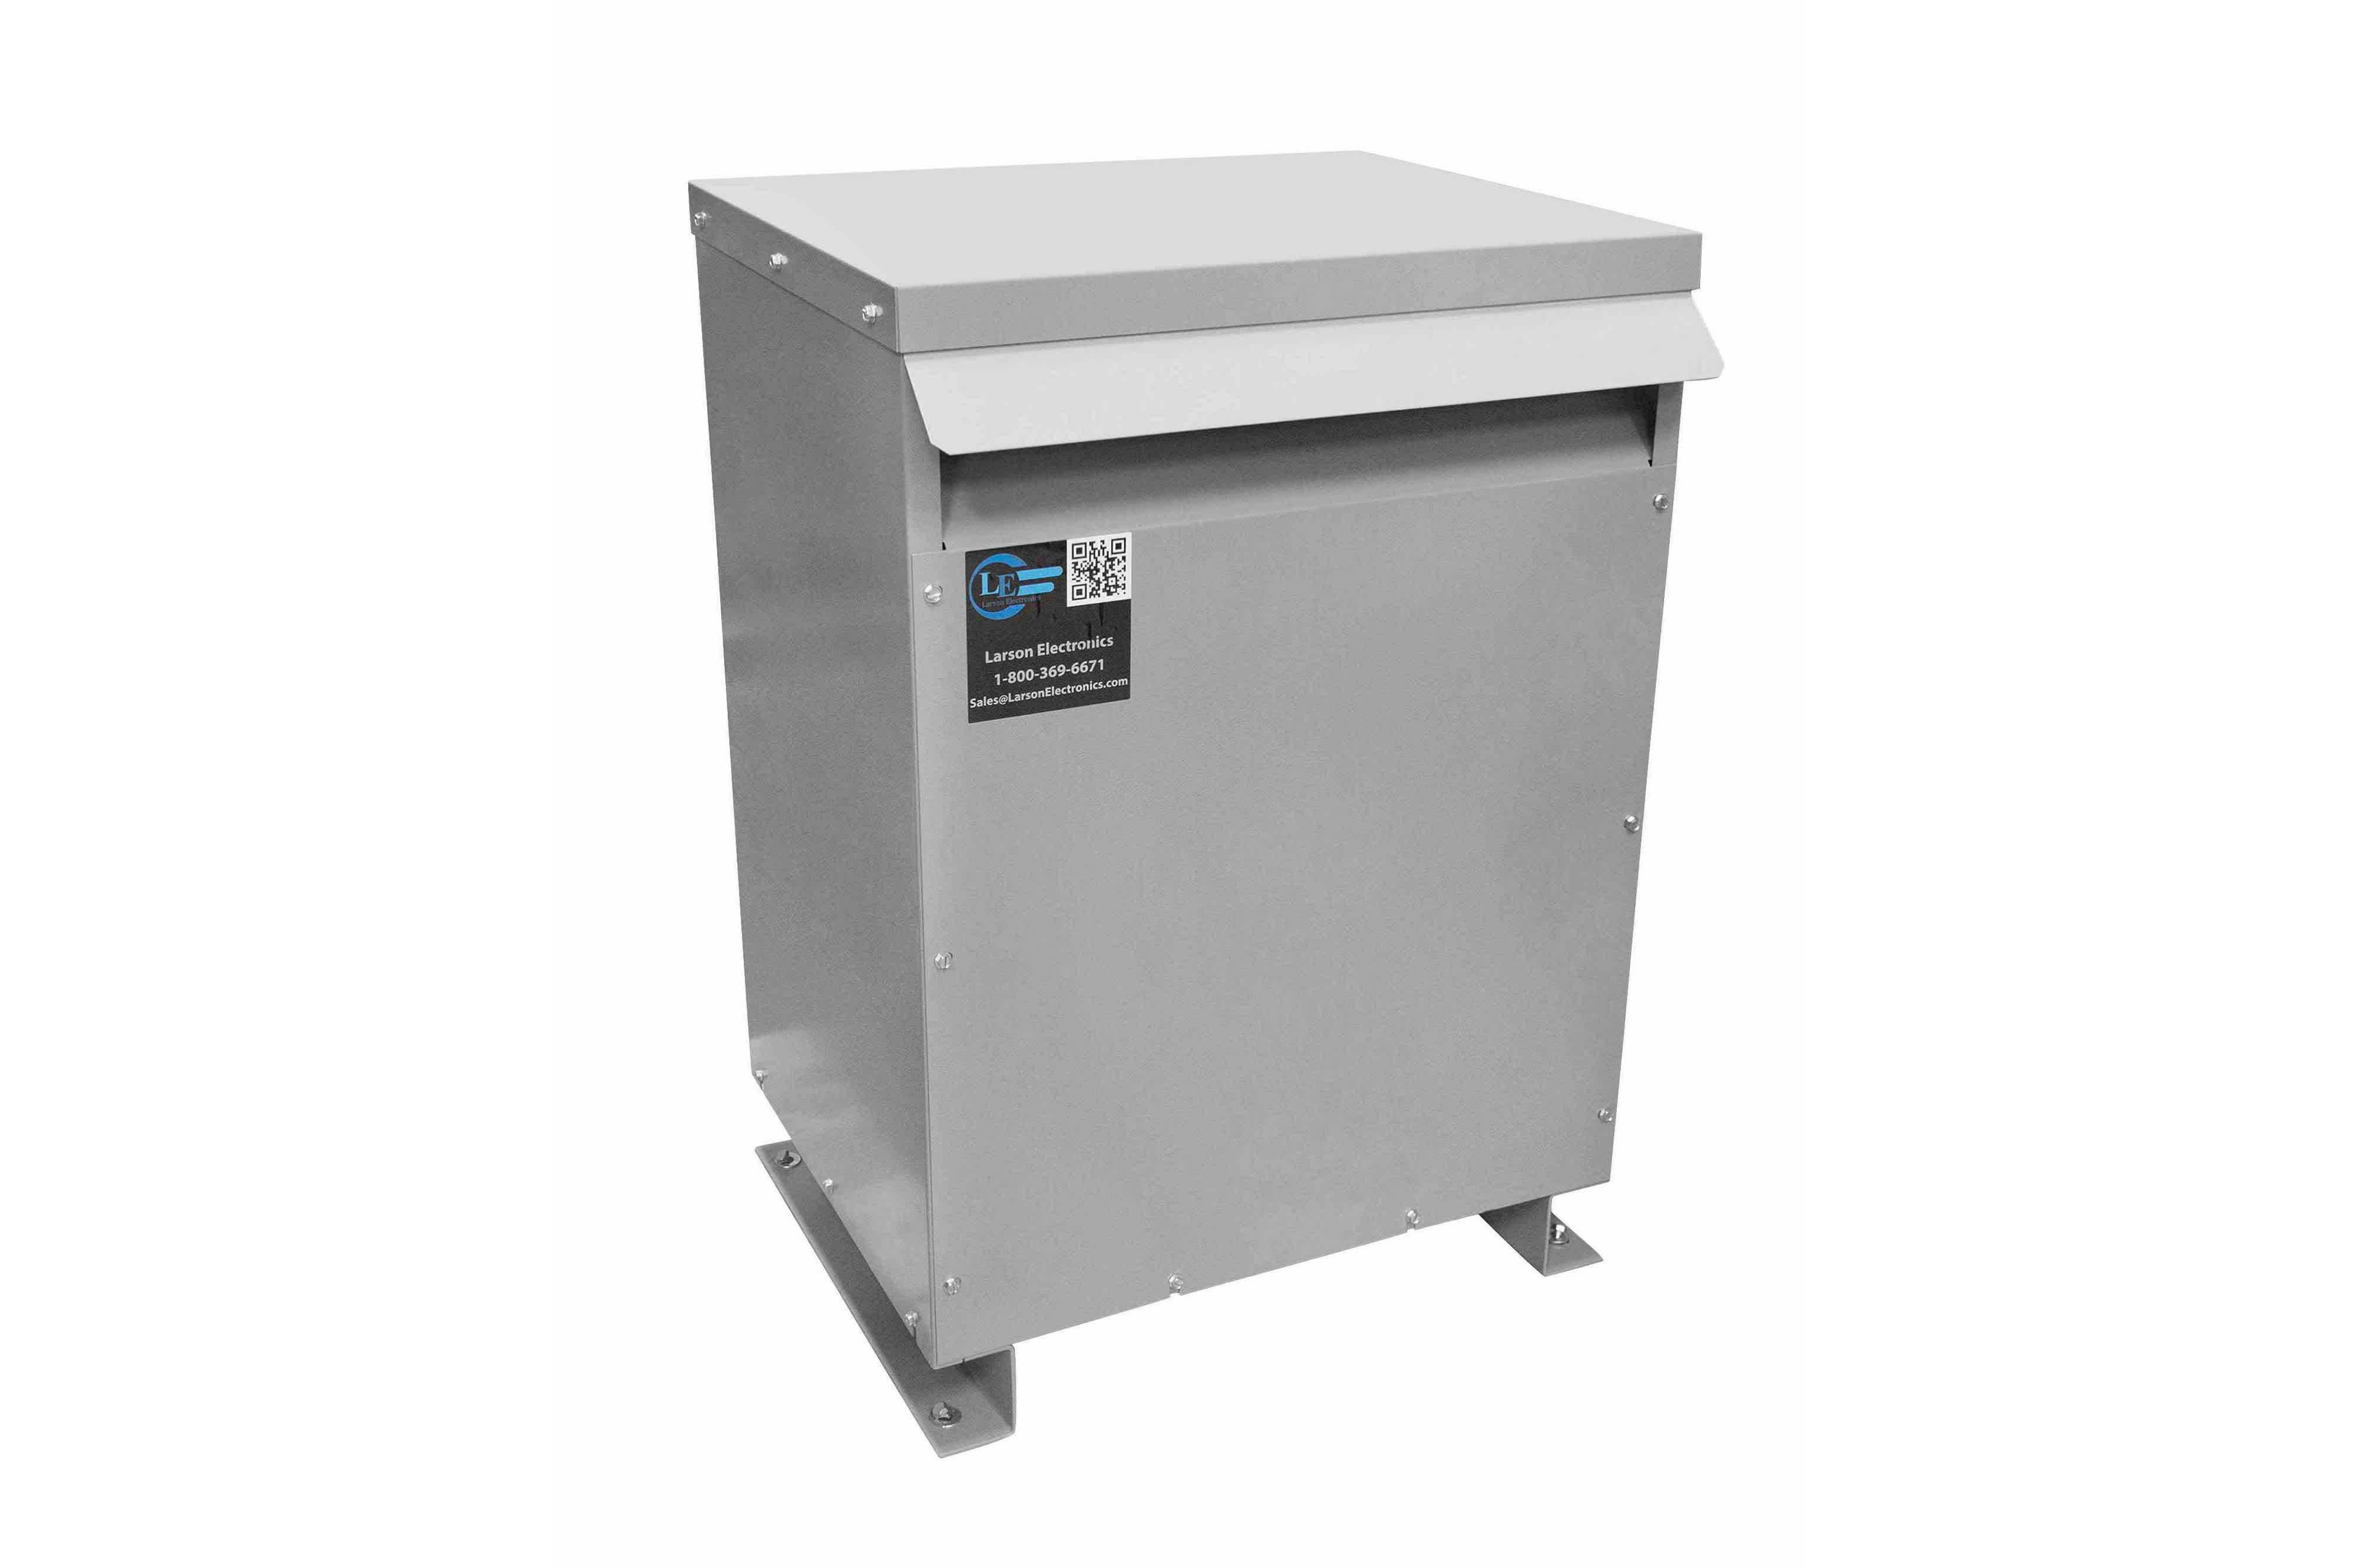 42.5 kVA 3PH Isolation Transformer, 600V Wye Primary, 400V Delta Secondary, N3R, Ventilated, 60 Hz